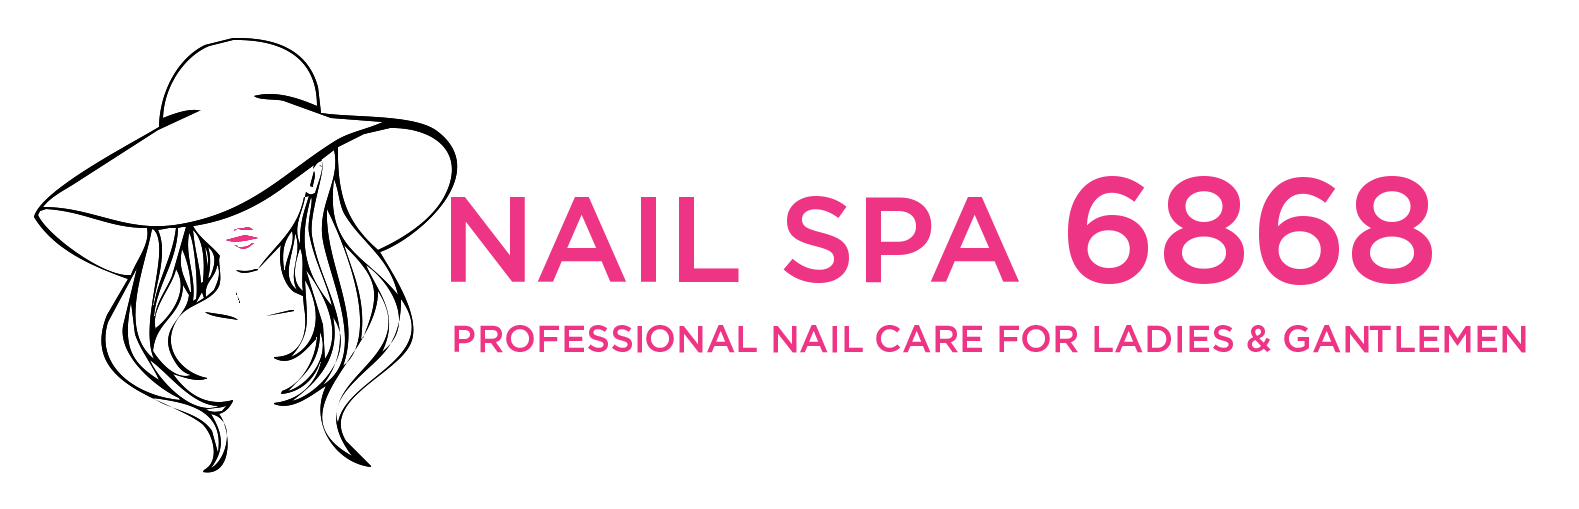 Nailspa6868 - All the info you need to know about French Nail  - nail salon near me Cambridge